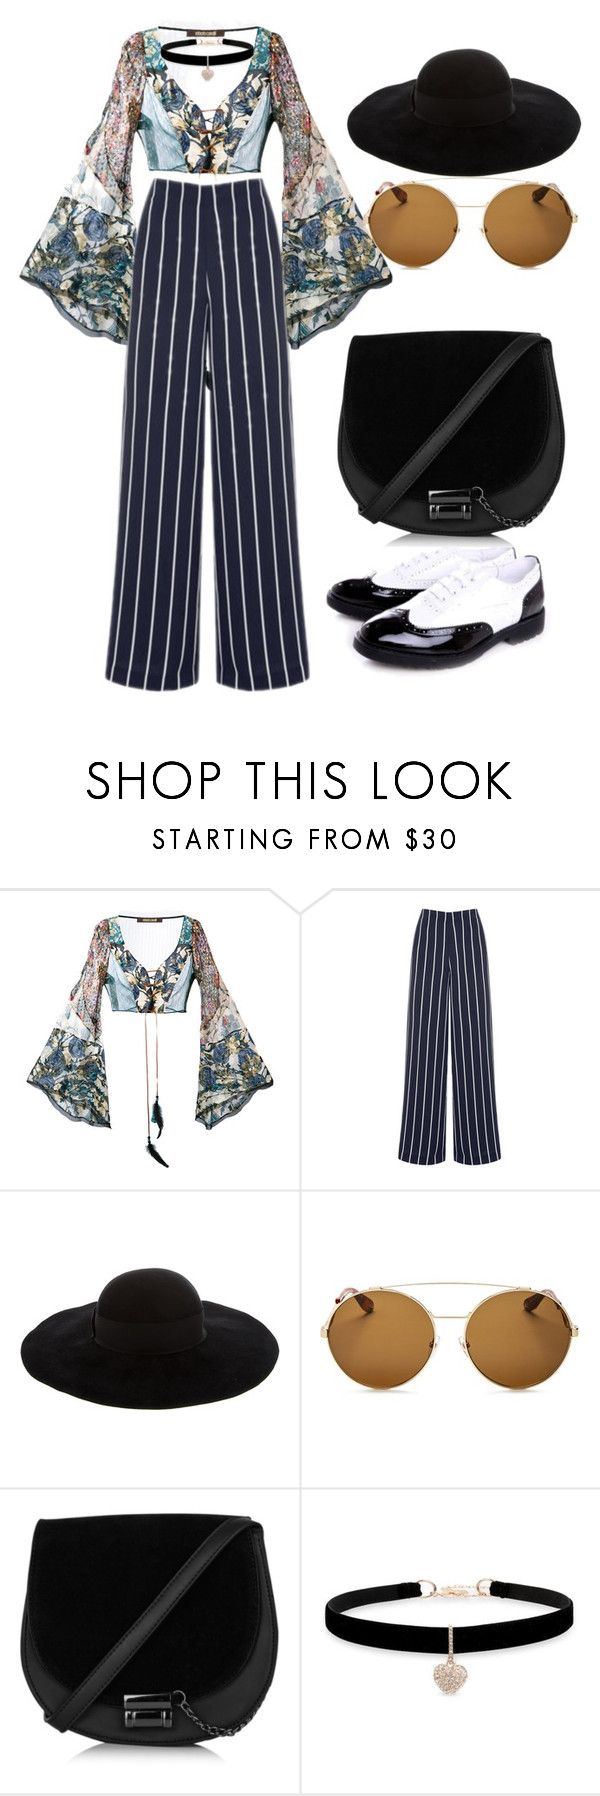 """""""for sheidlina 2"""" by dianacrystal on Polyvore featuring Roberto Cavalli, Warehouse, Eugenia Kim, Givenchy and Betsey Johnson"""